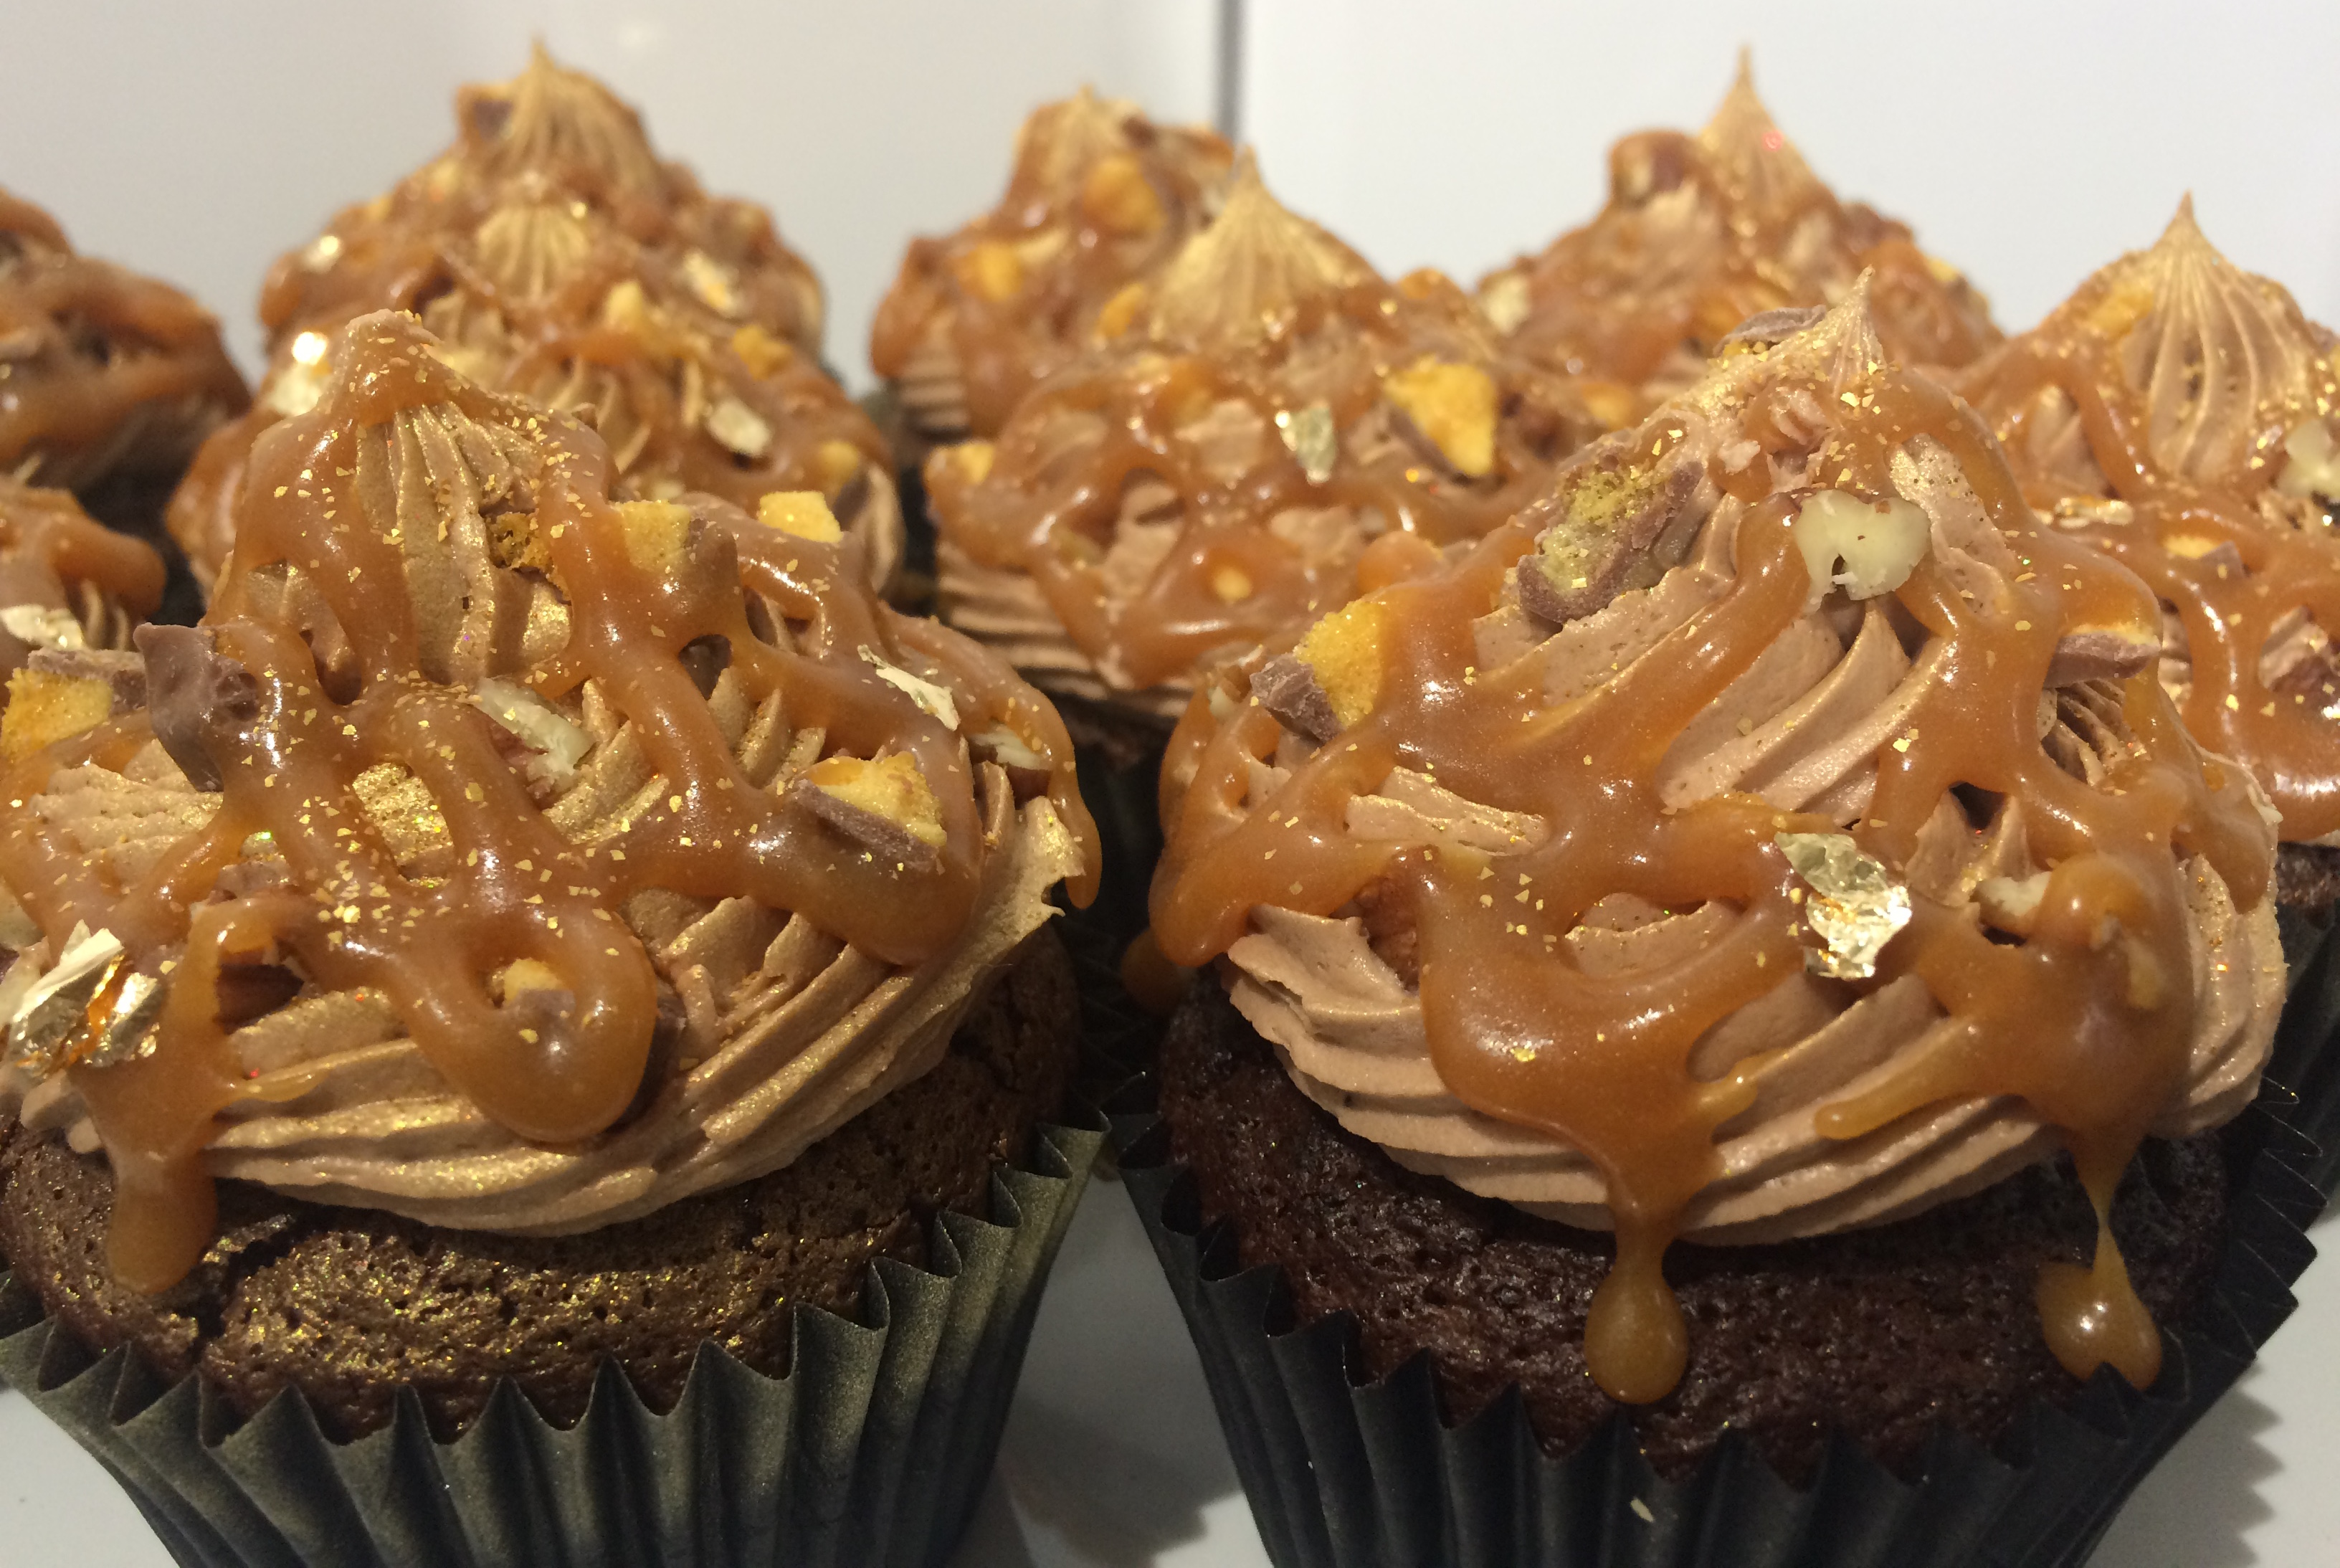 Chocolate, Salted Caramel and Pecan Cupcakes2